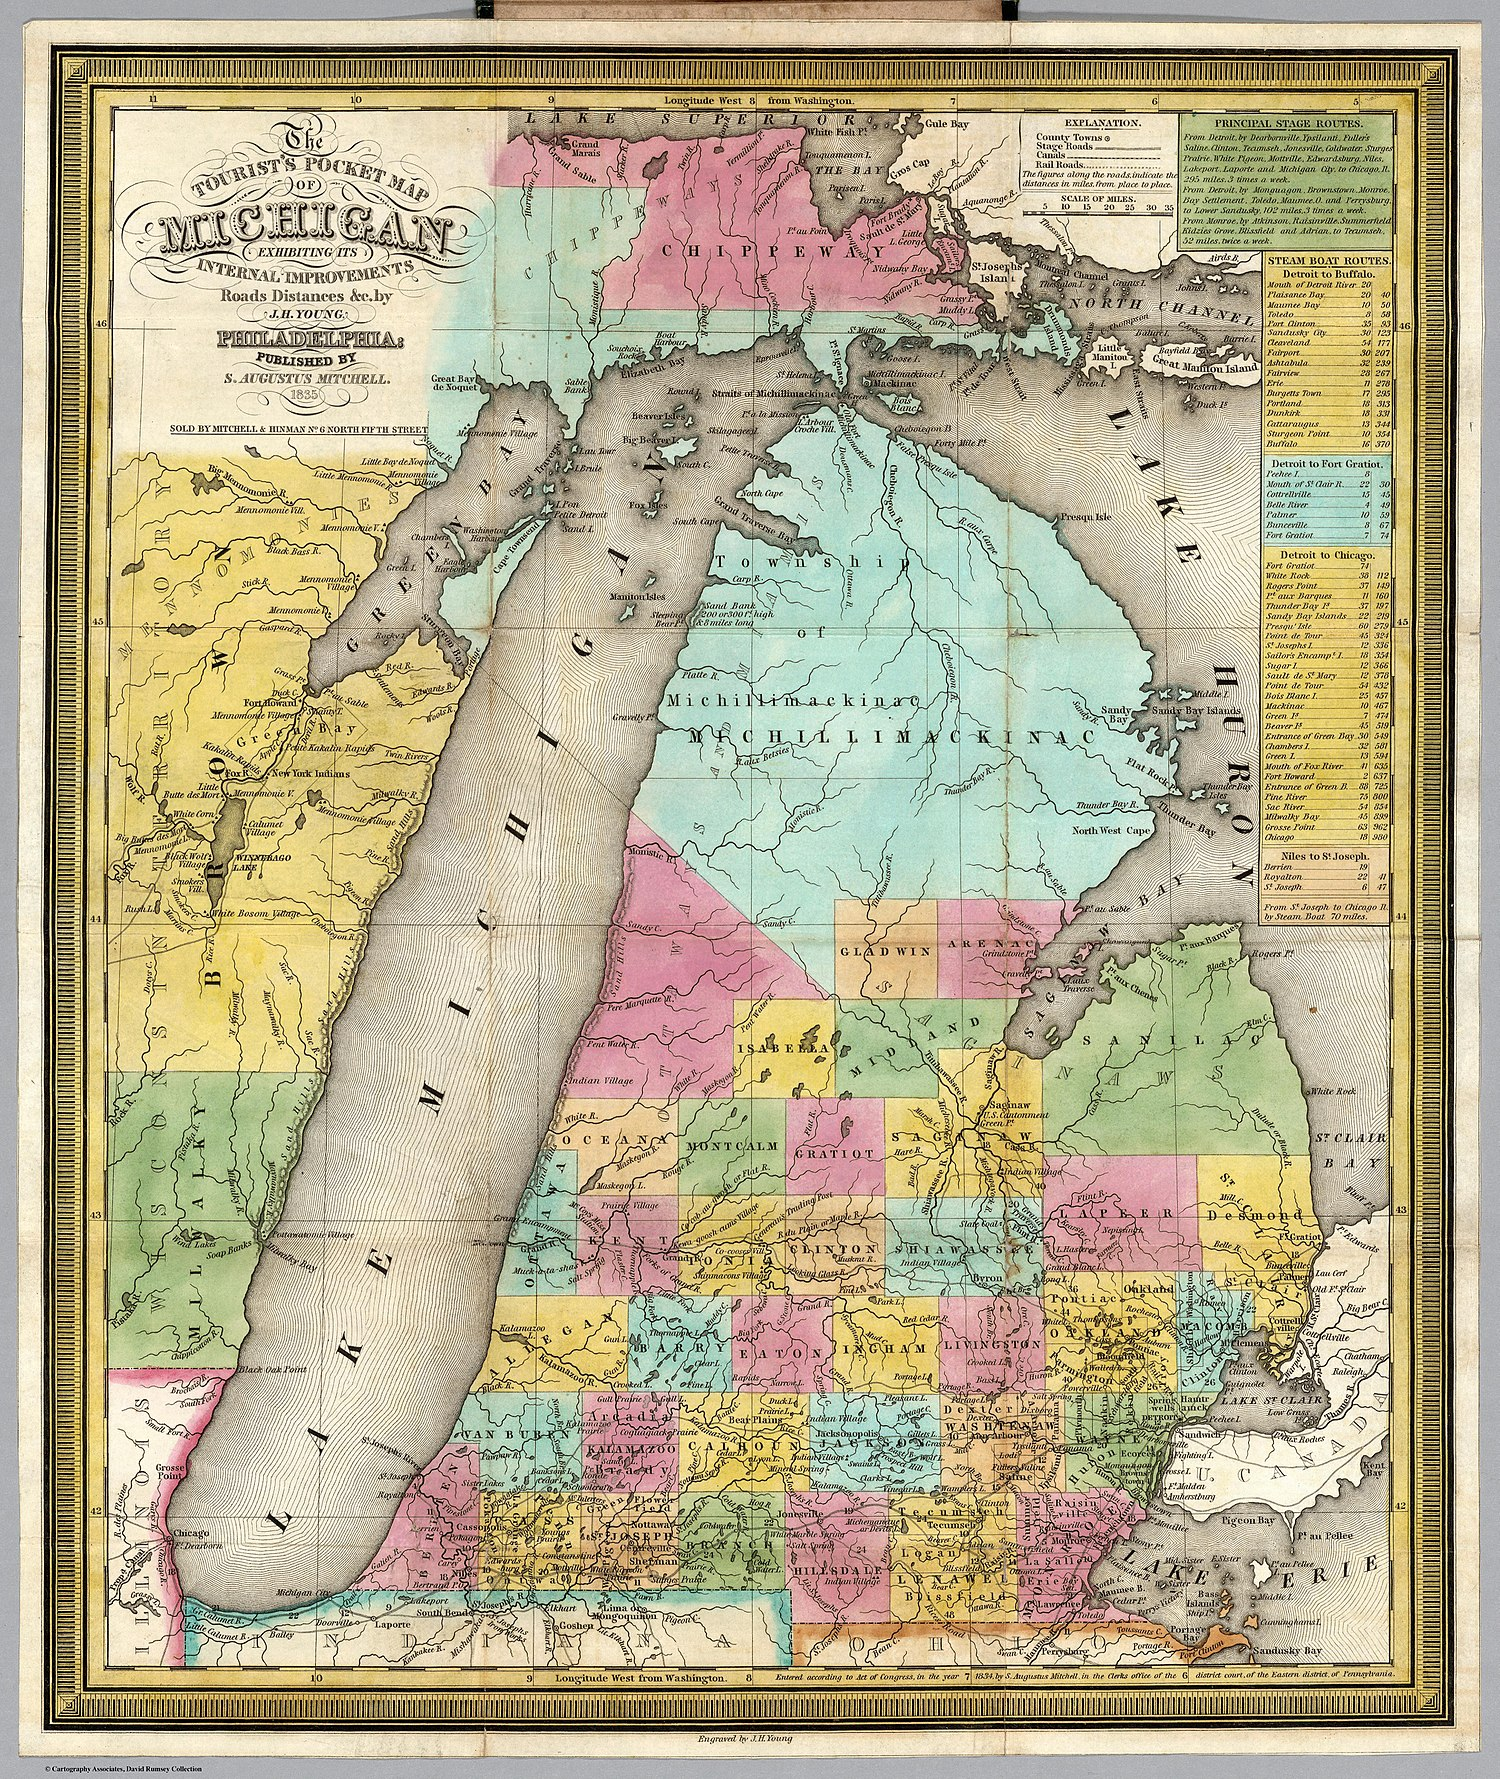 Northern Michigan islands, rivers, and shore landmarks featured prominently on this 1835 Tourist's Pocket Map Of Michigan.